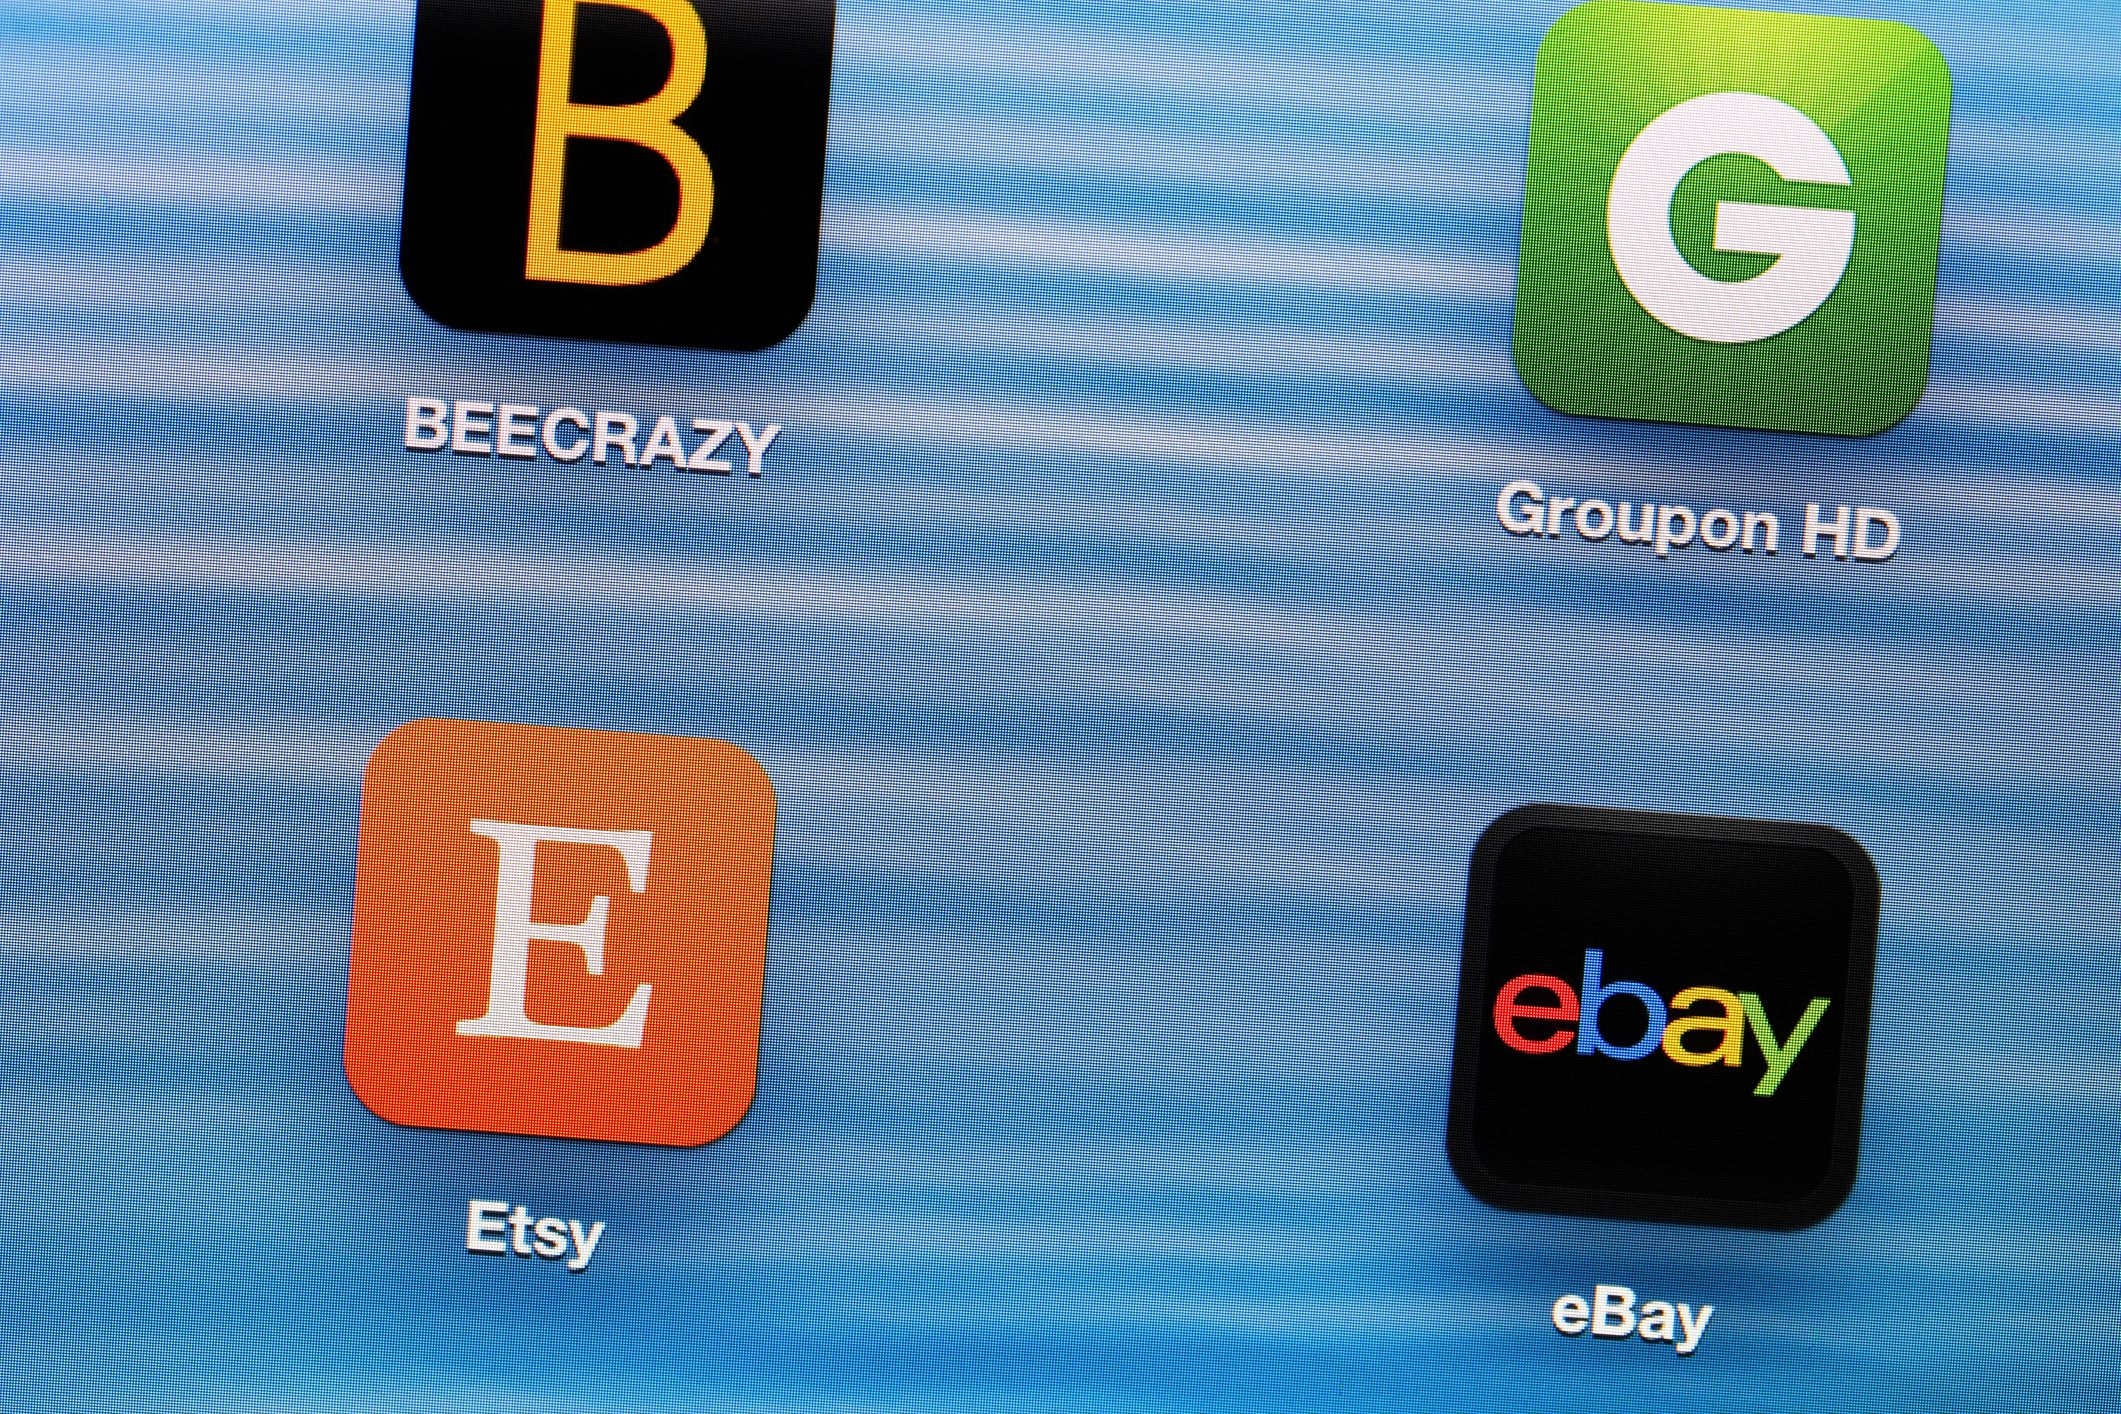 A closeup image of a smartphone screen showing the Etsy app.